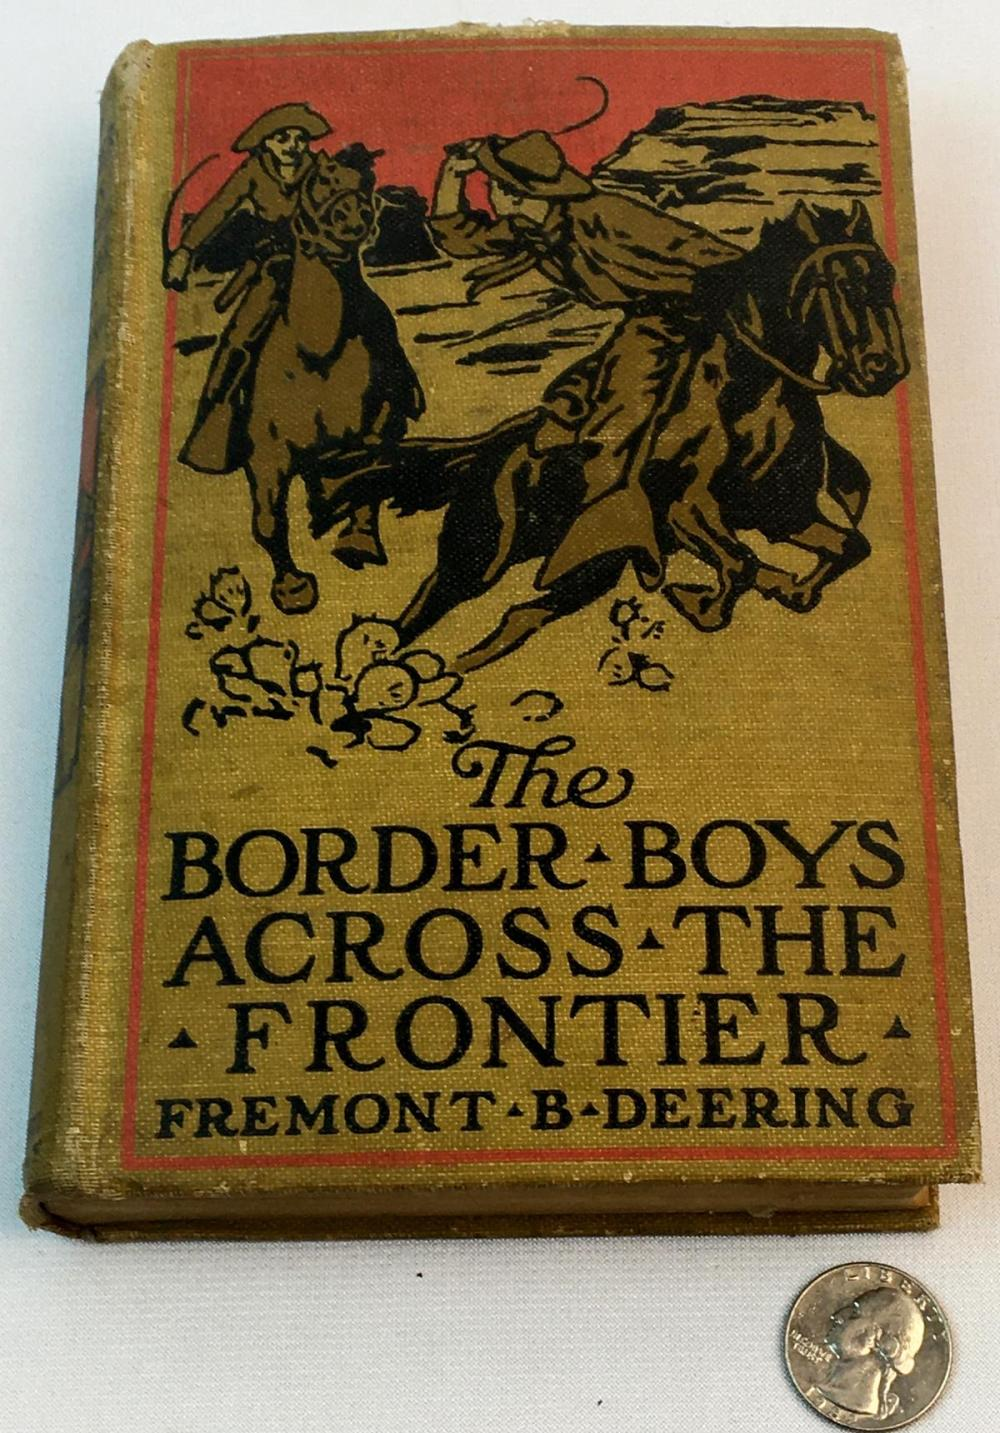 1911 The Border Boys Across the Frontier by Freemont B. Deering FIRST EDITION